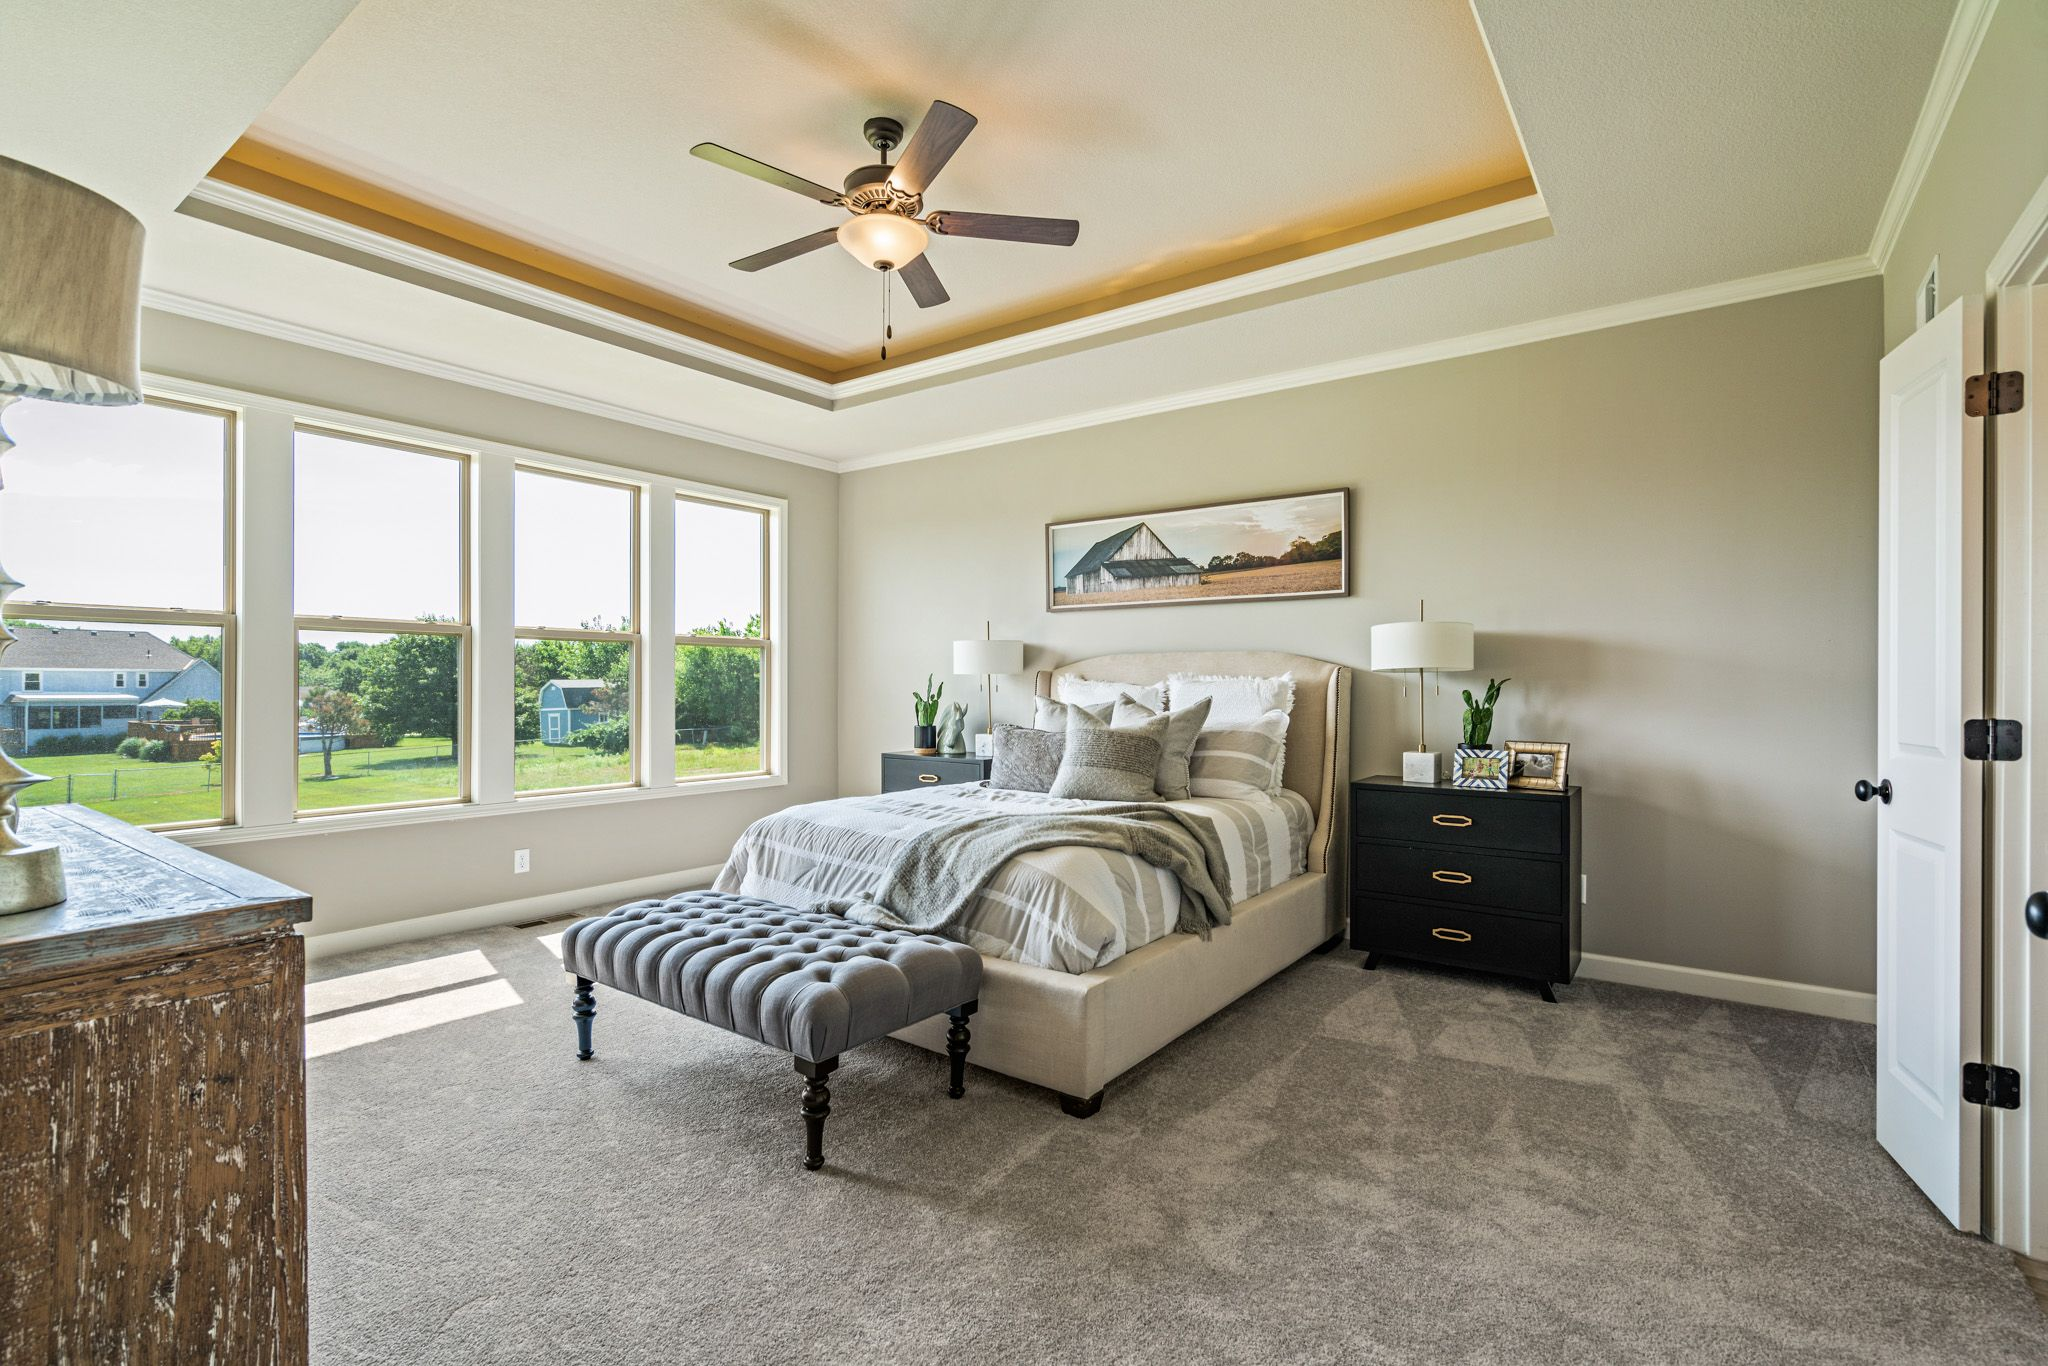 Bedroom featured in the Pikewood By Summit Homes in Kansas City, MO